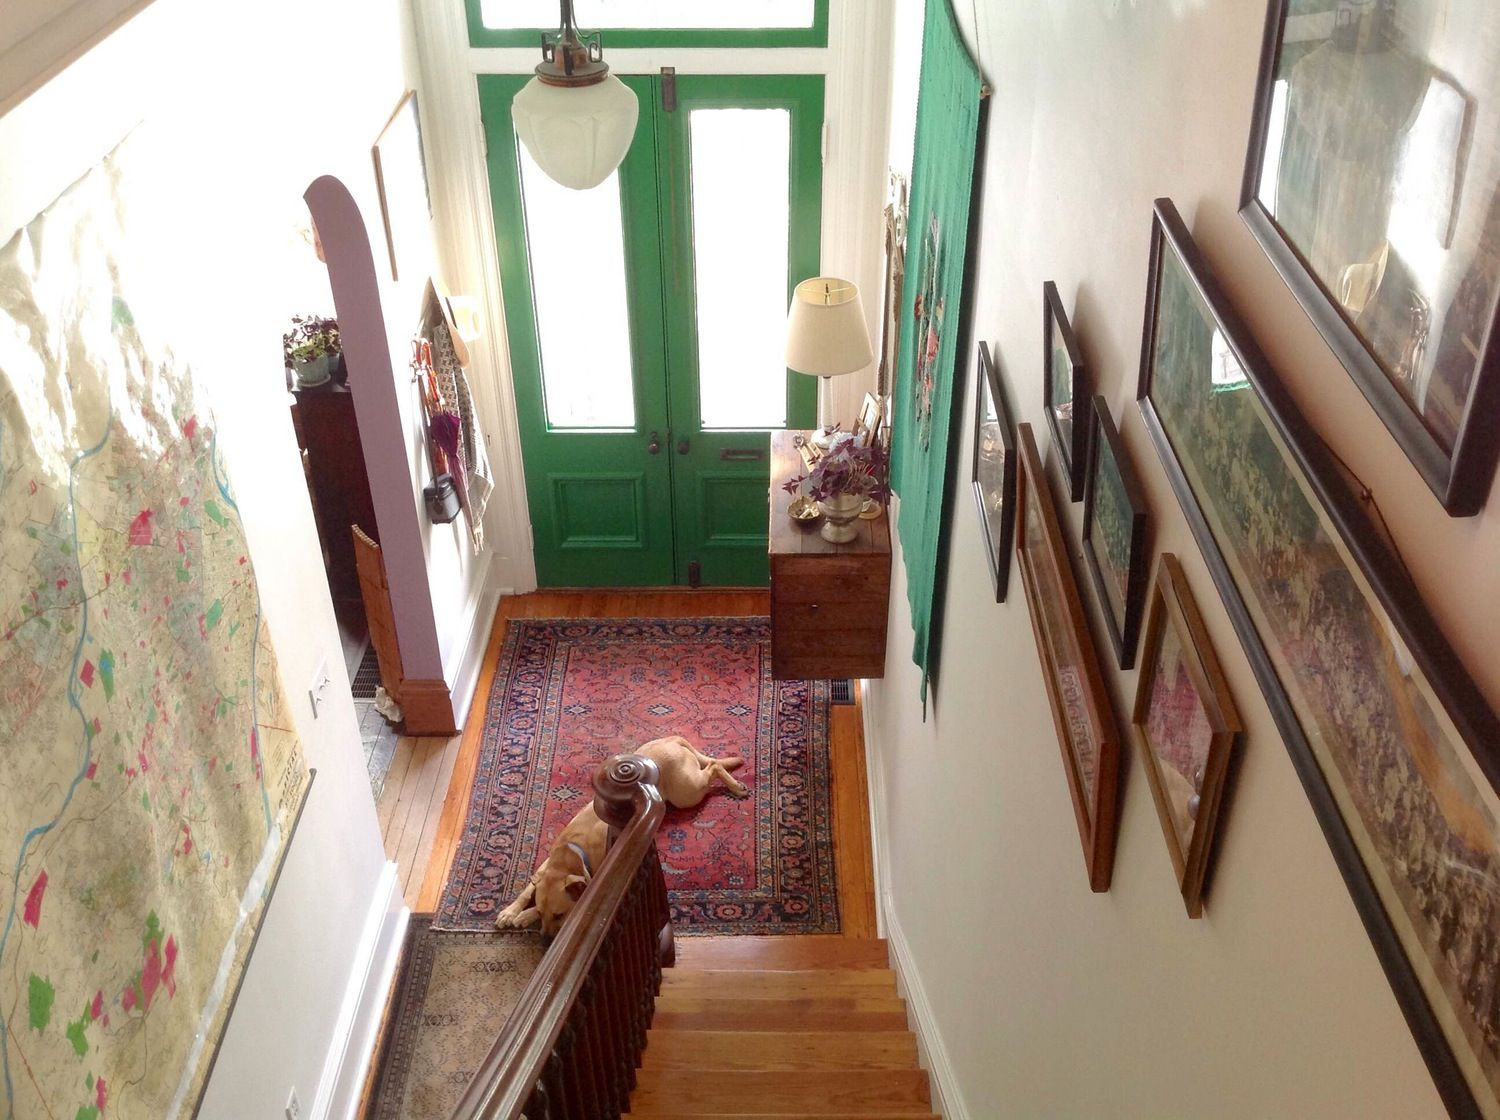 Vote for Your Faves: Check Out All the Energized Entryways So Far